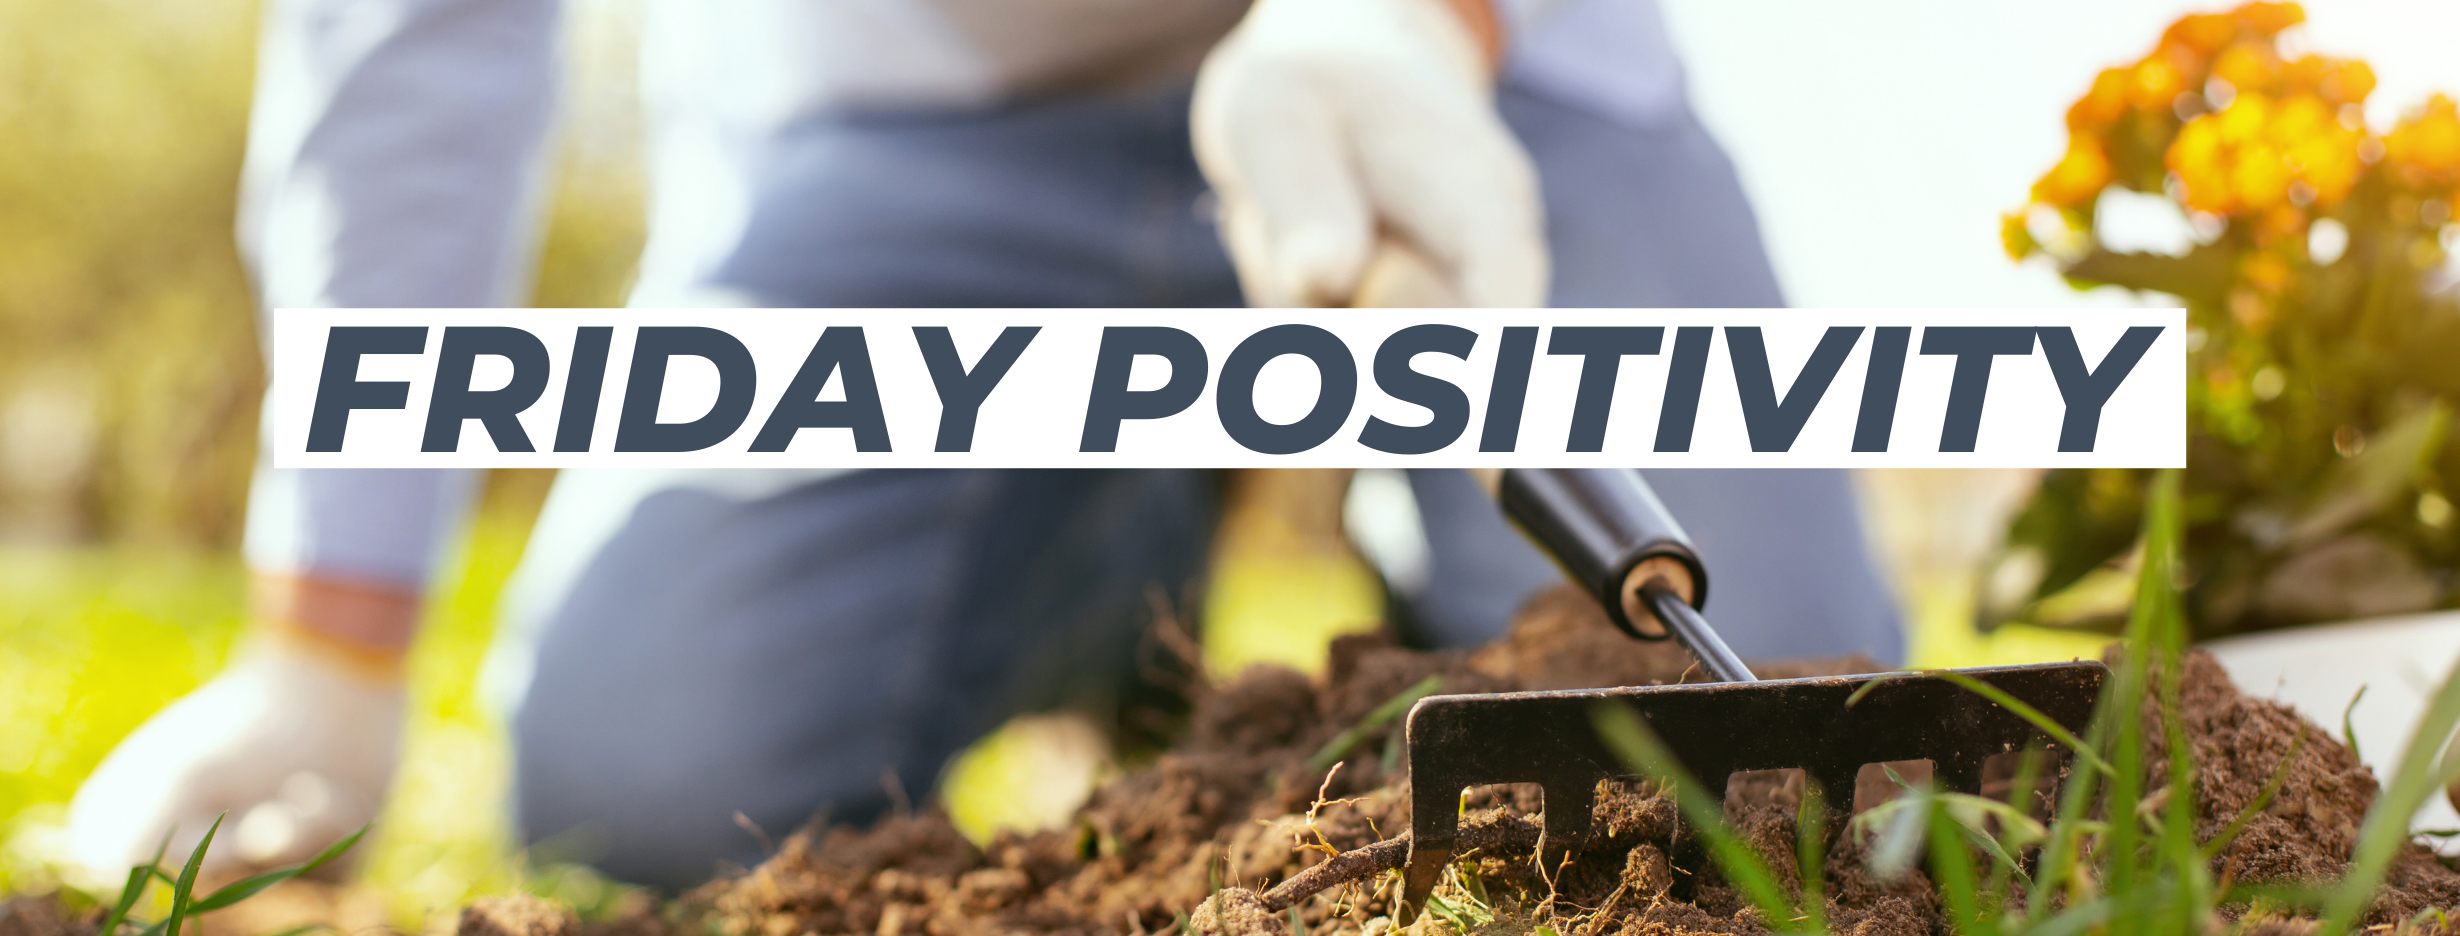 Friday Positivity - Planting Seeds In Your Backyard Could Reduce Stress Levels Equivalent To 8 Mindfulness Sesssions Thumbnail